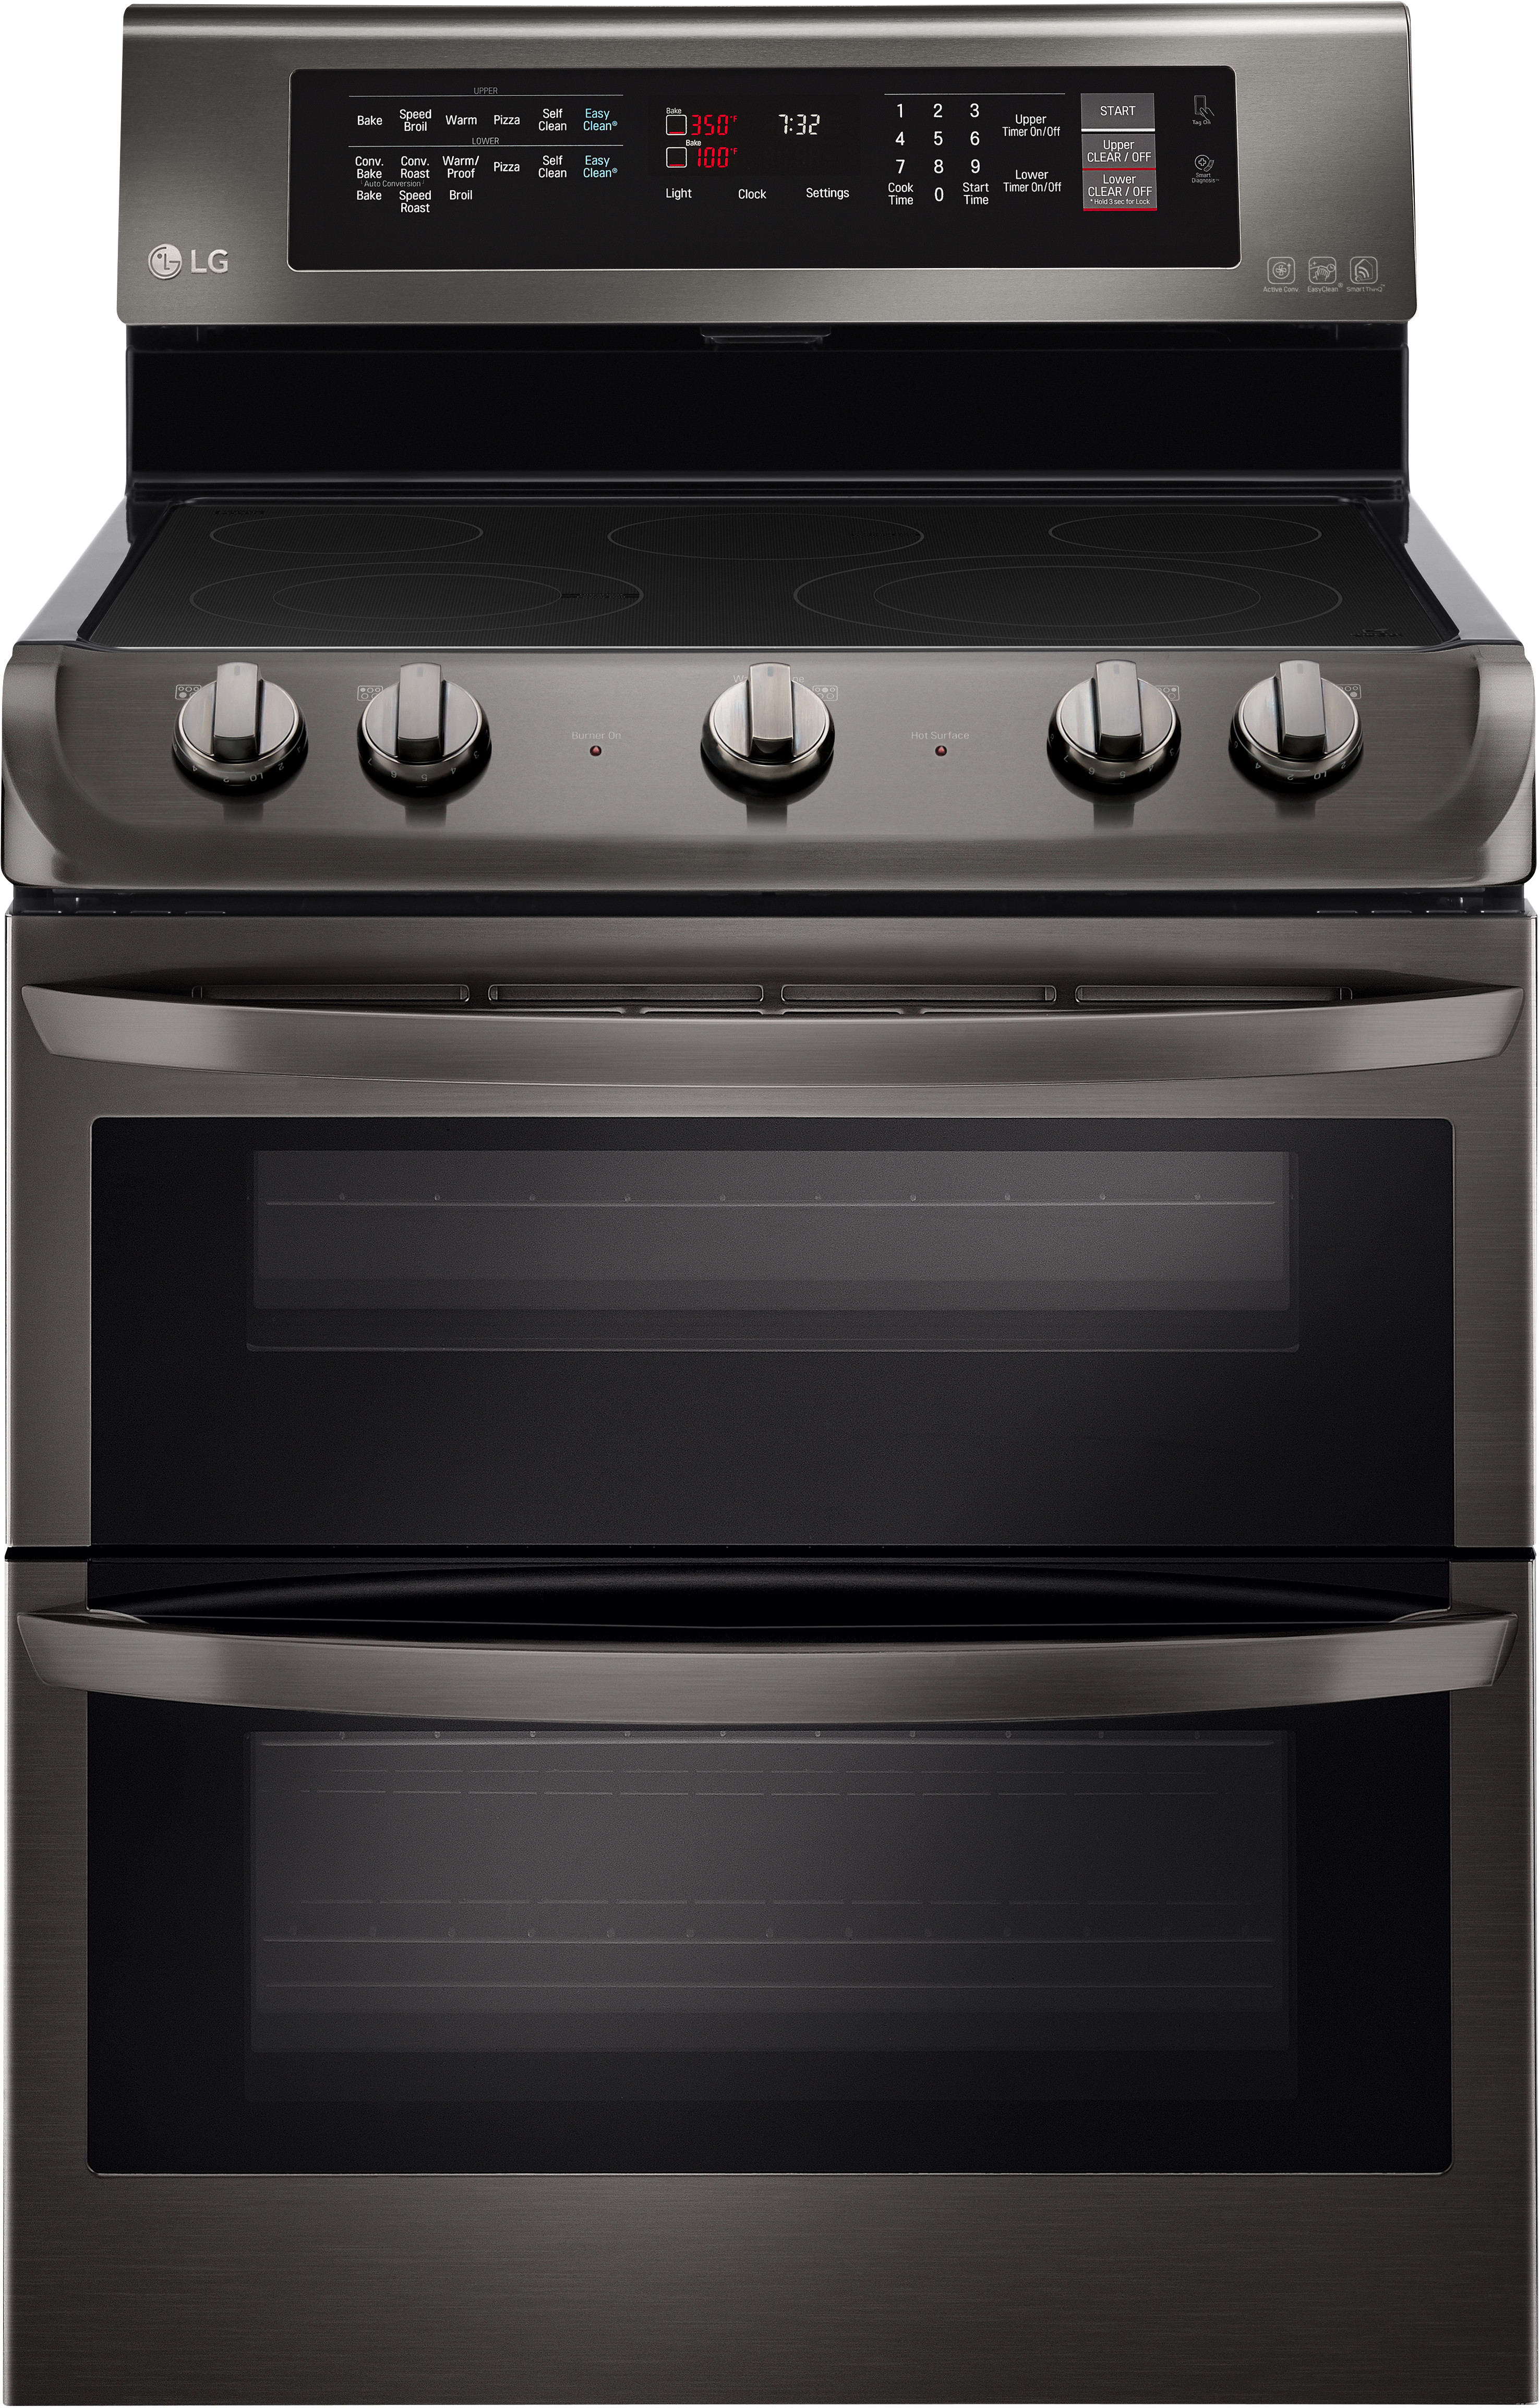 Lg Lde4413bd 30 Inch Dual Oven Electric Range With 7 3 Cu